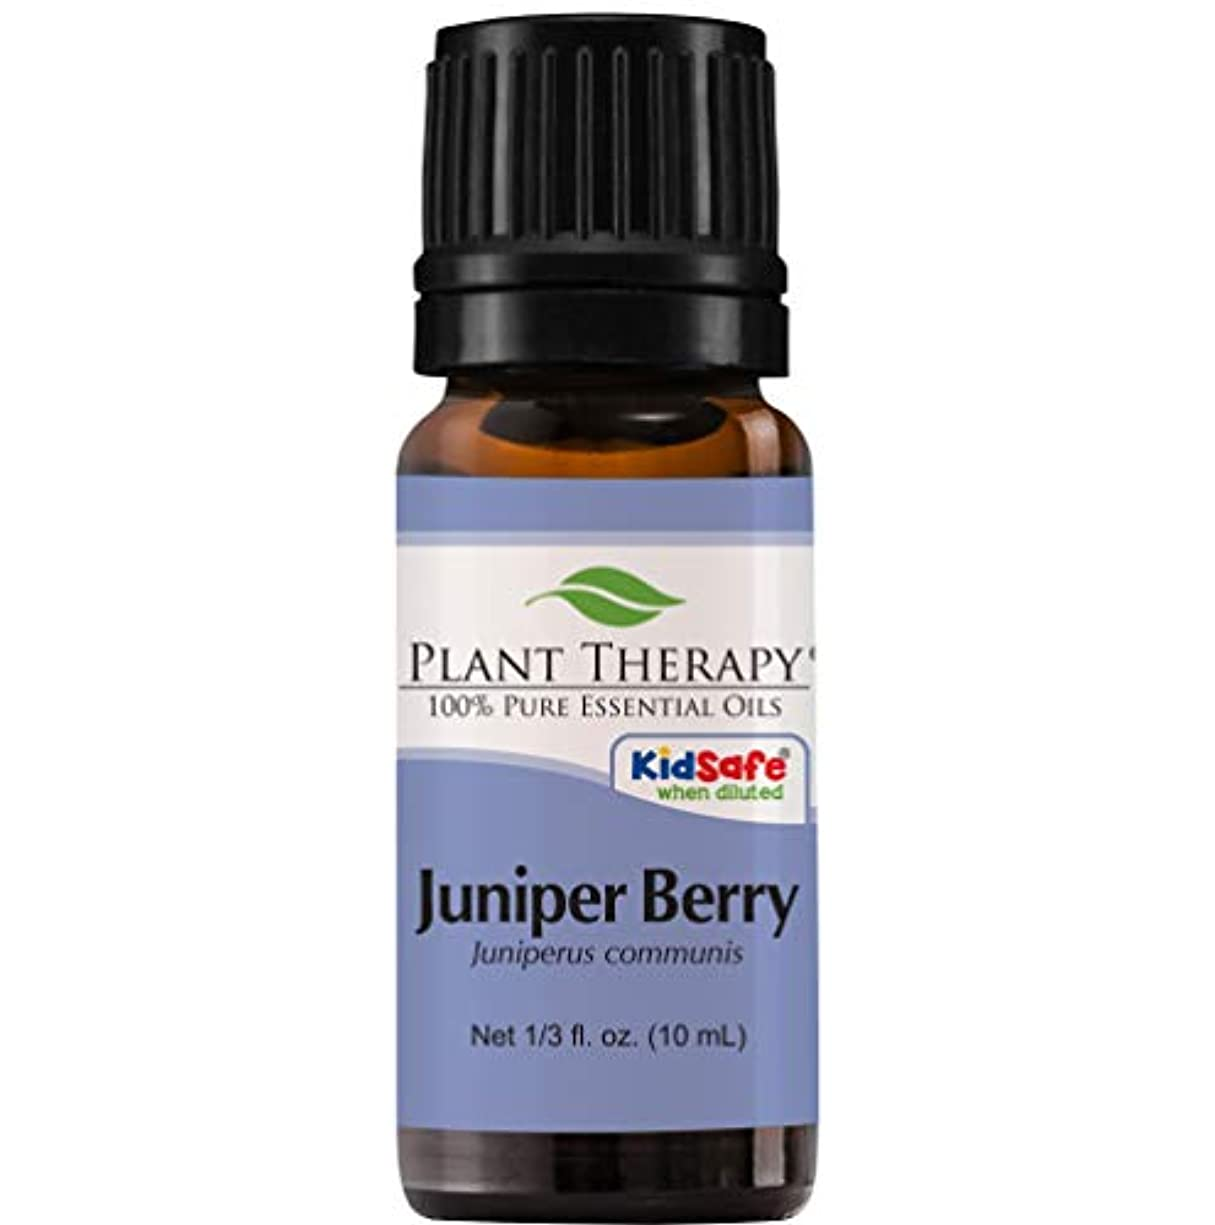 憂慮すべき繁栄具体的にPlant Therapy Juniper Berry Essential Oil. 100% Pure, Undiluted, Therapeutic Grade. 10 ml (1/3 oz).